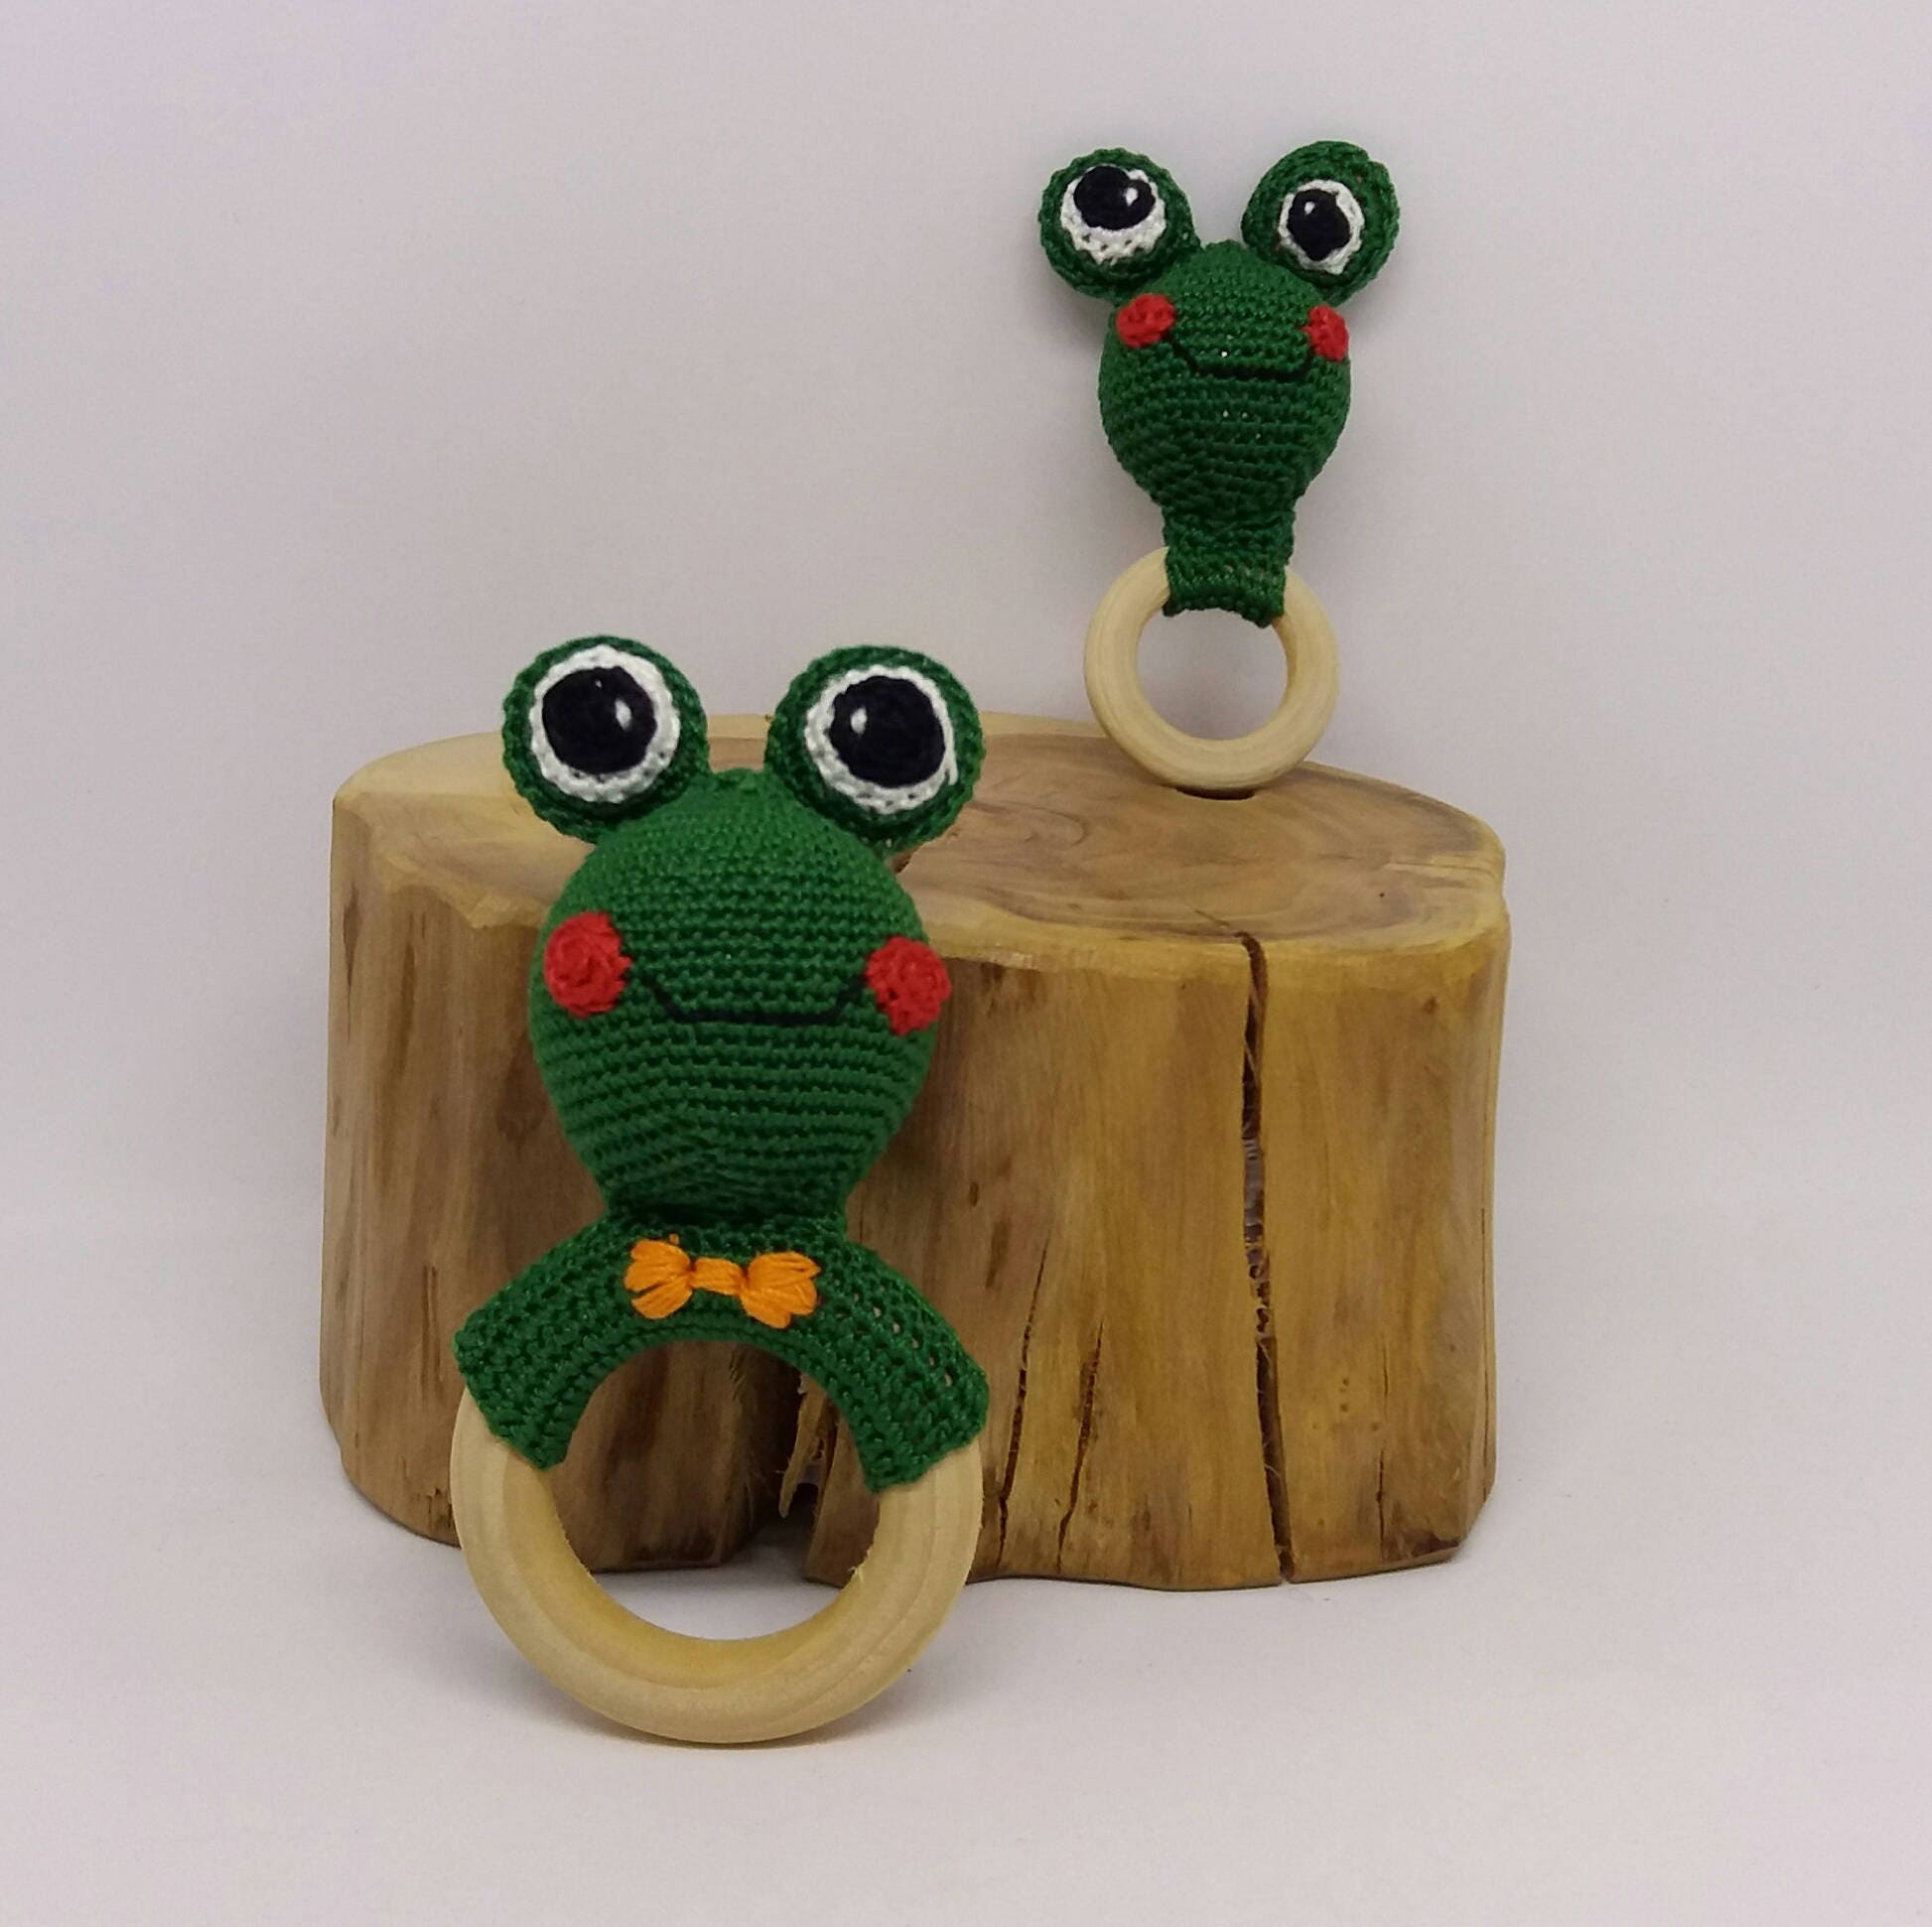 Crochet frog rattle toy/crochet rattle toy/cotton crochet